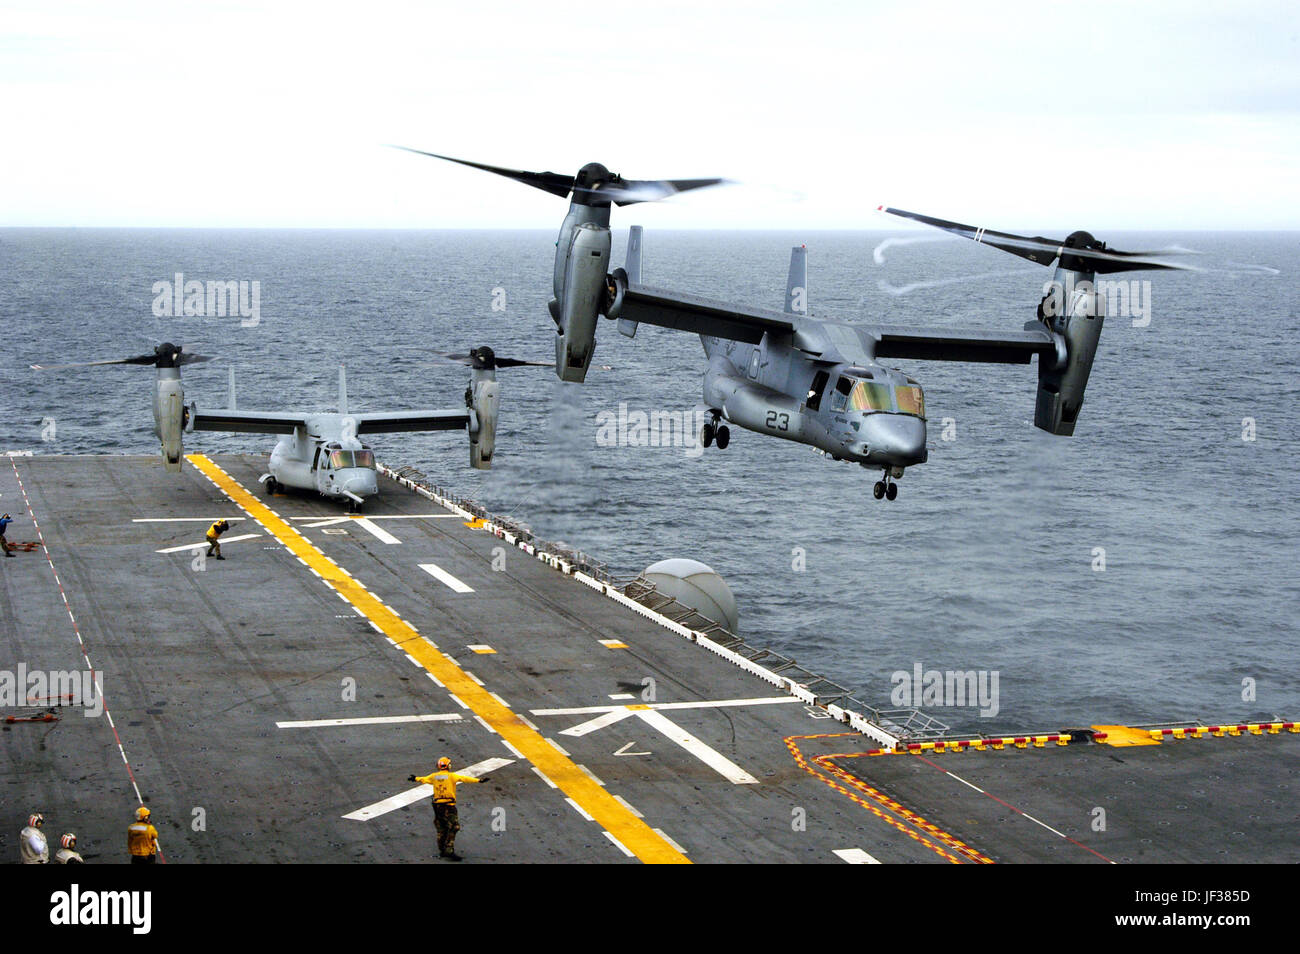 051115-N-3527B-068  A U.S. Marine Corps MV-22B Osprey executes a vertical take off from the flight deck of the amphibious - Stock Image